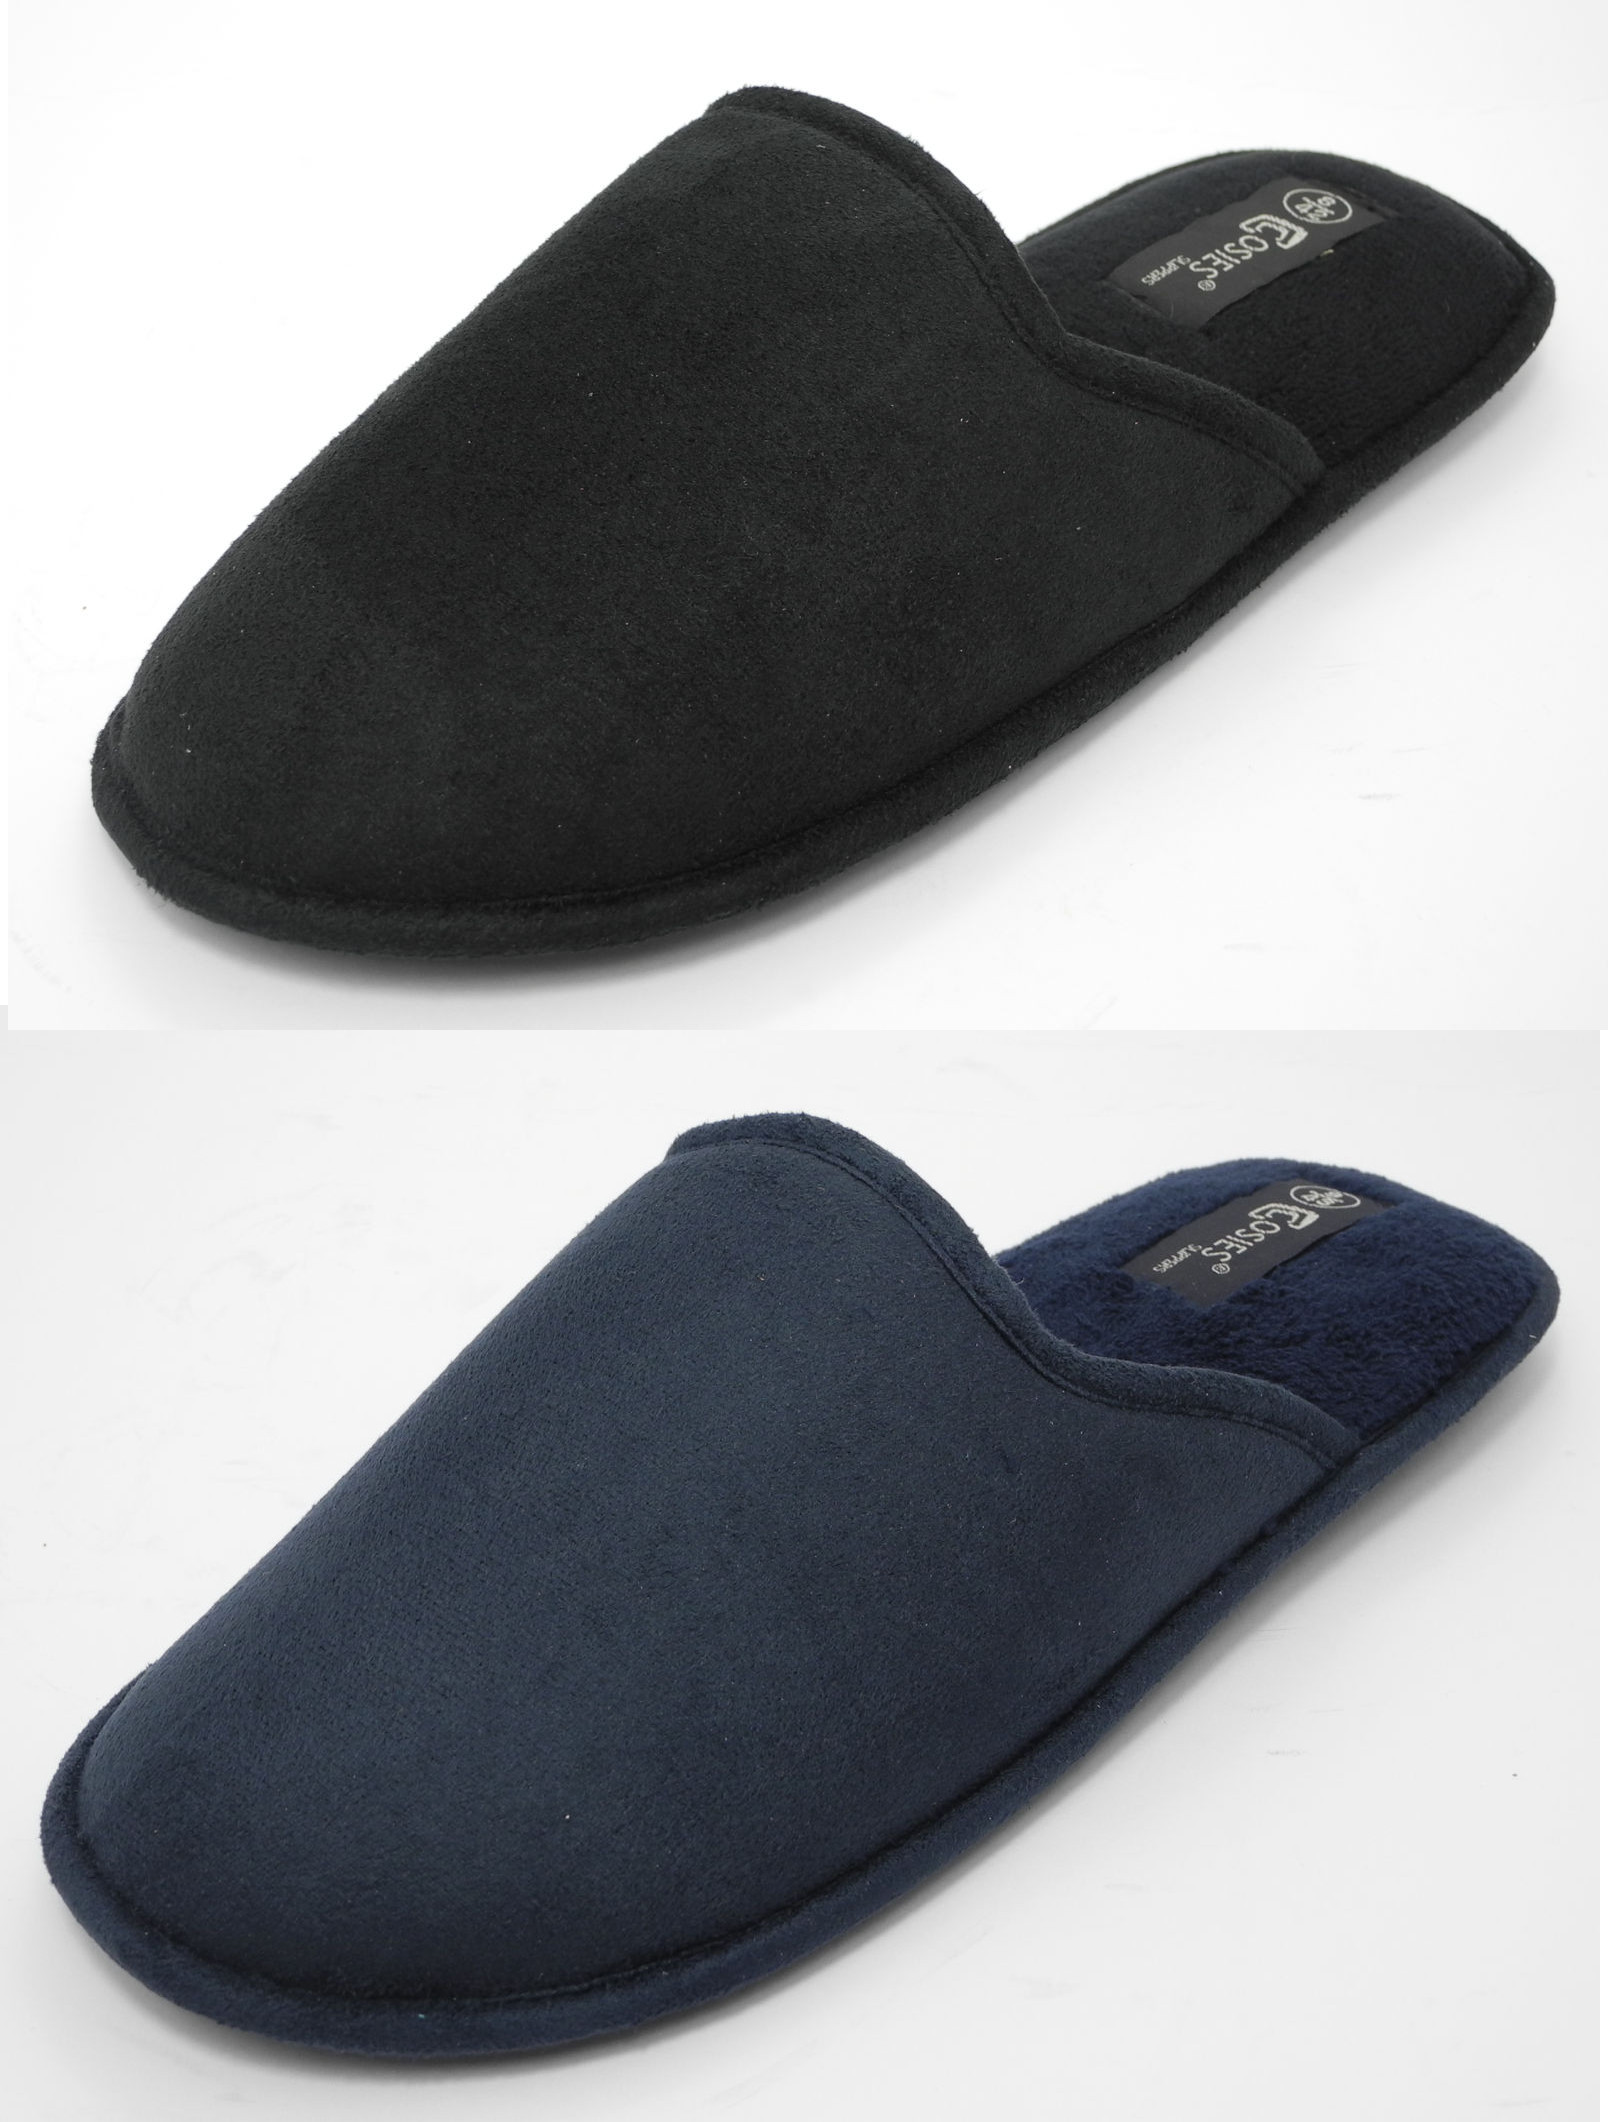 Mens COSIES Micro Suede Mules Mule Slippers BLACK BLUE Size 6 7 8 9 10 11 Enlarged Preview